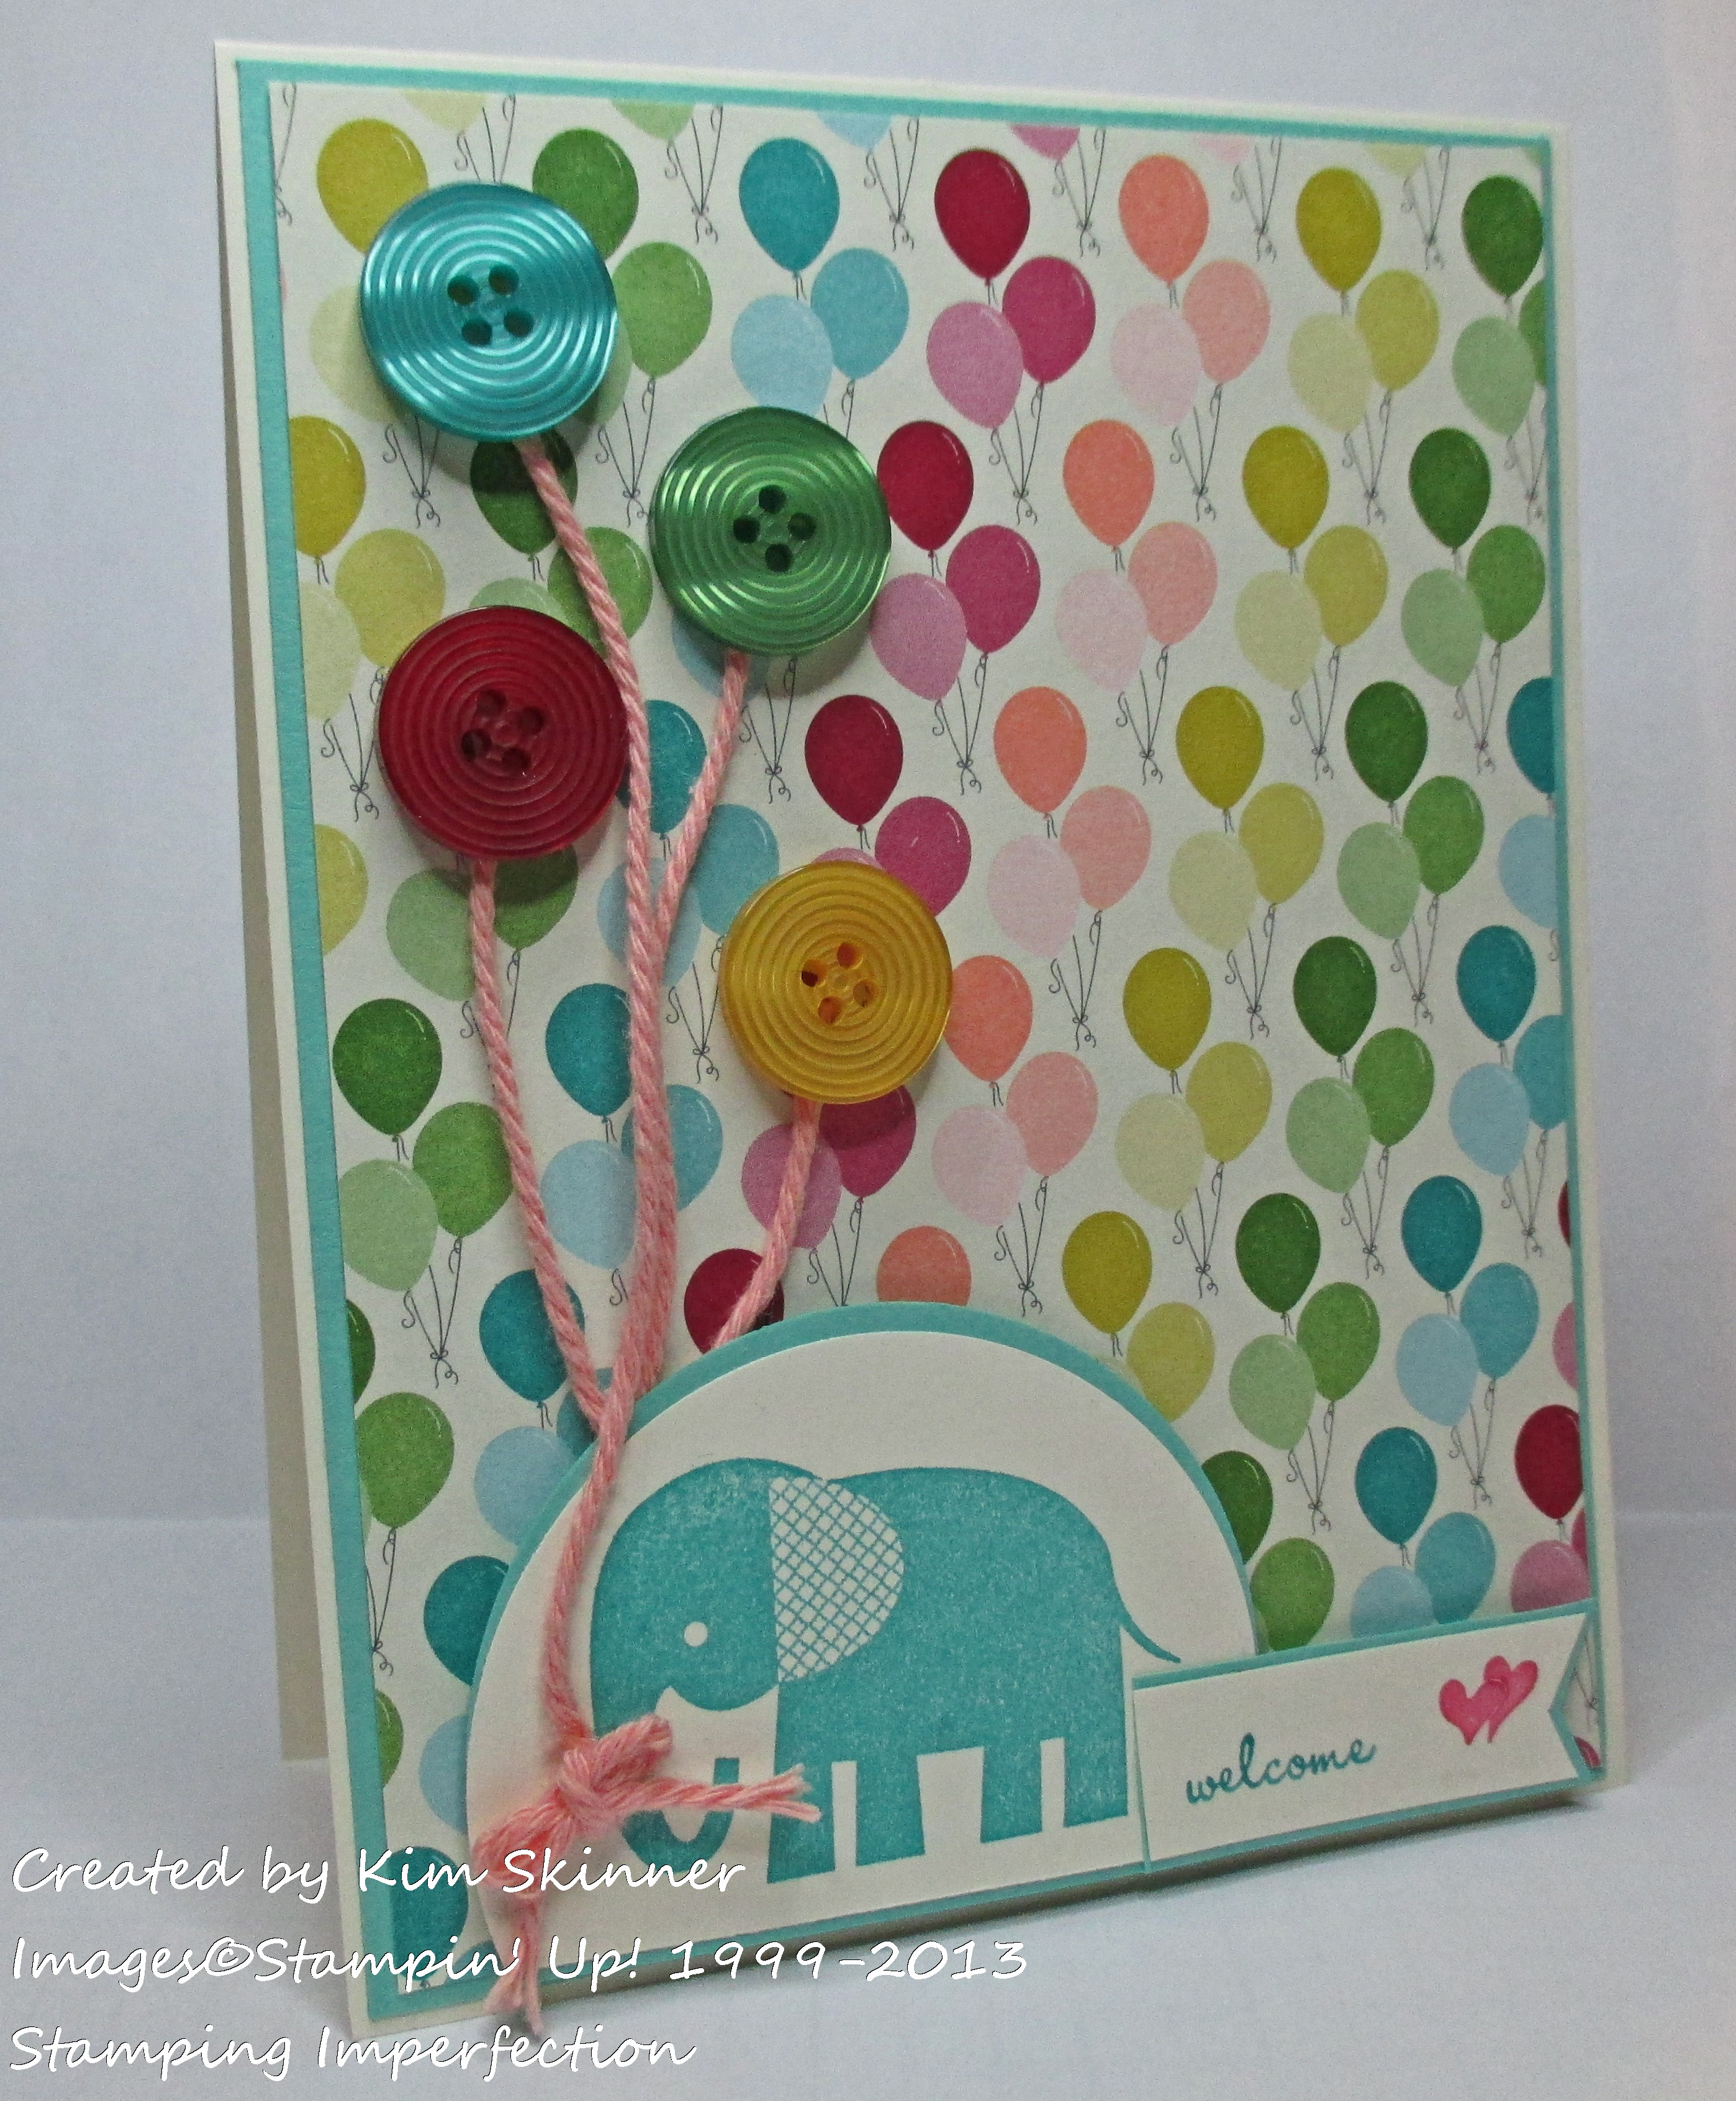 Stamping Imperfection Children's Card